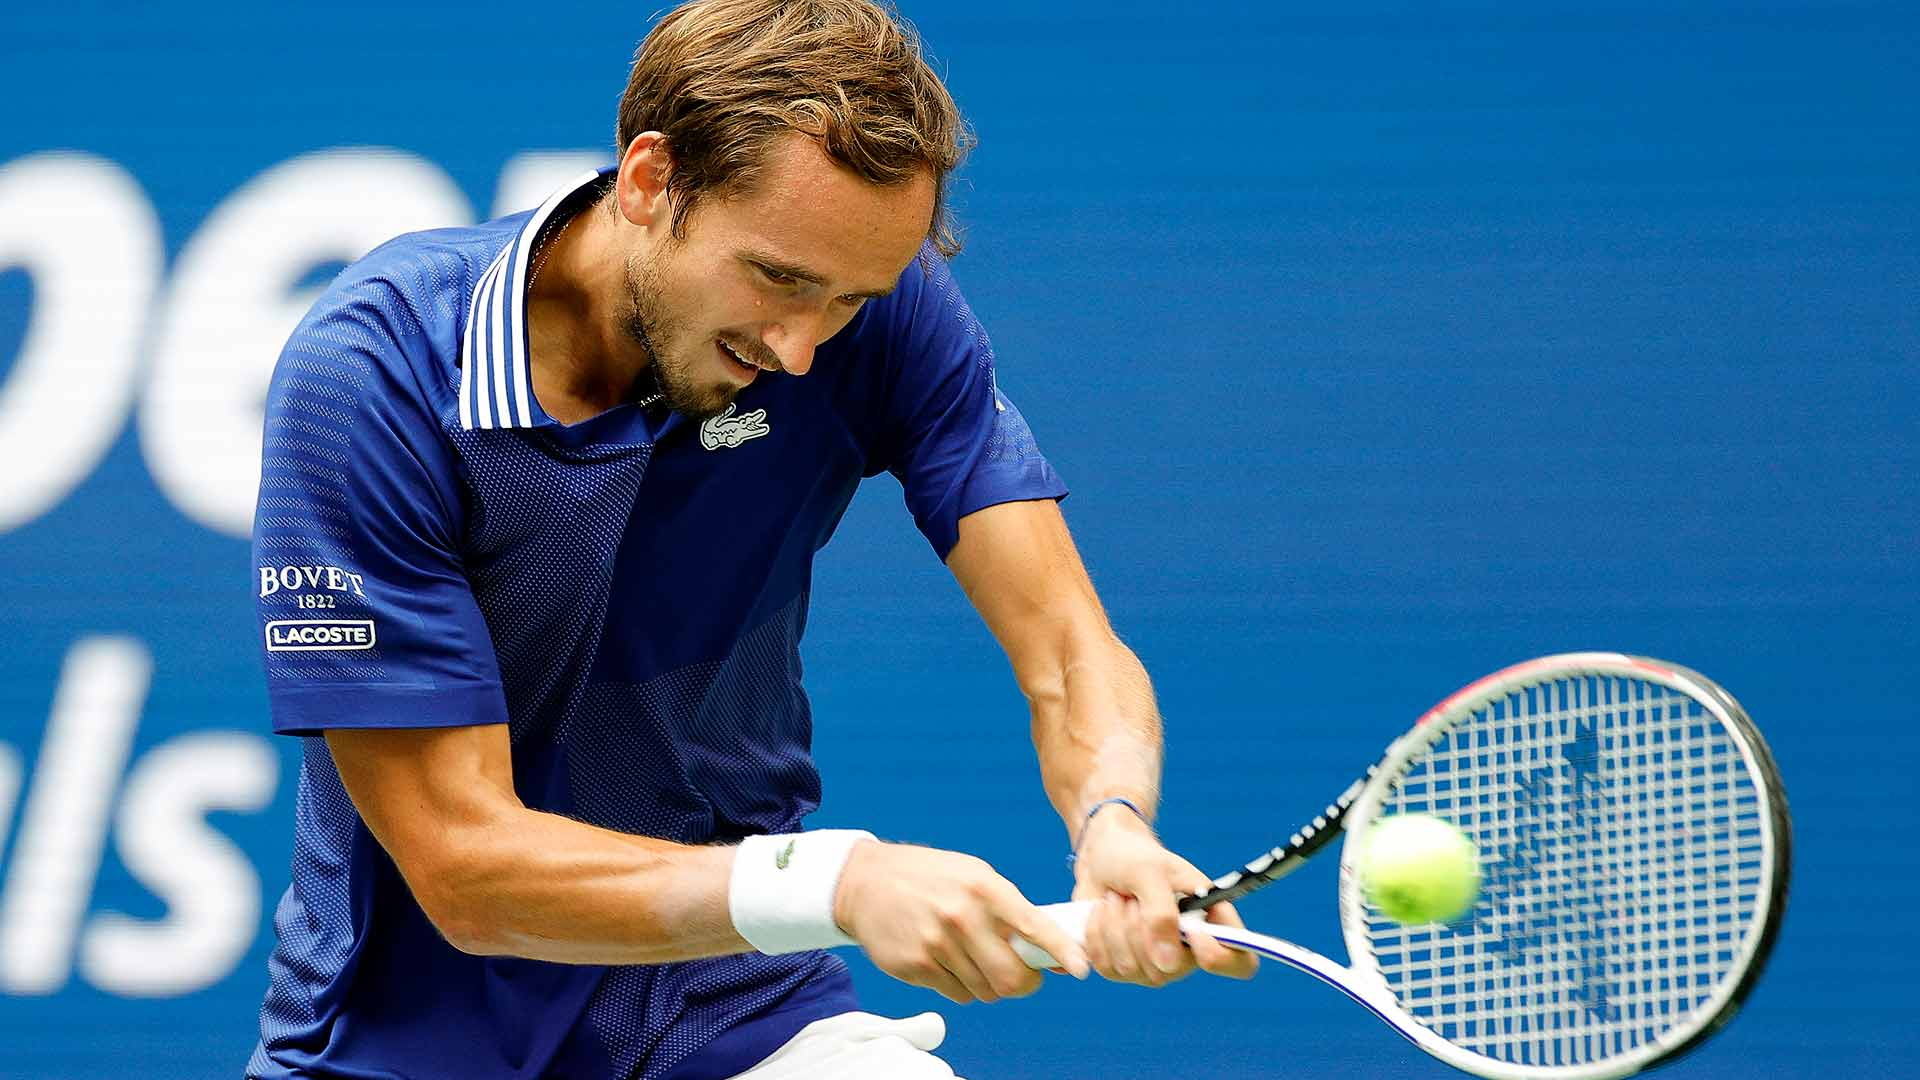 """<a href='https://www.atptour.com/en/players/daniil-medvedev/mm58/overview'>Daniil Medvedev</a>""""><br /><em><sup>Photo Credit: Sarah Stier/Getty Images<br /></sup></em>Djokovic looked to quickly seize the momentum at the start of the second set, putting more returns in play to take a 0/40 advantage. The 85-time tour-level titlist was unable to convert though, missing a neutral backhand slice into the net on his last opportunity of the game.</p> <p>The Serbian earned two more chances in his next return game. But Medvedev showed no fear, hitting a massive backhand down the line off his back foot to save one and crushing a big serve to save the other, leading to Djokovic's racquet smash.</p> <p>Medvedev embraced the pressure of the moment throughout the match. The reigning <a href="""